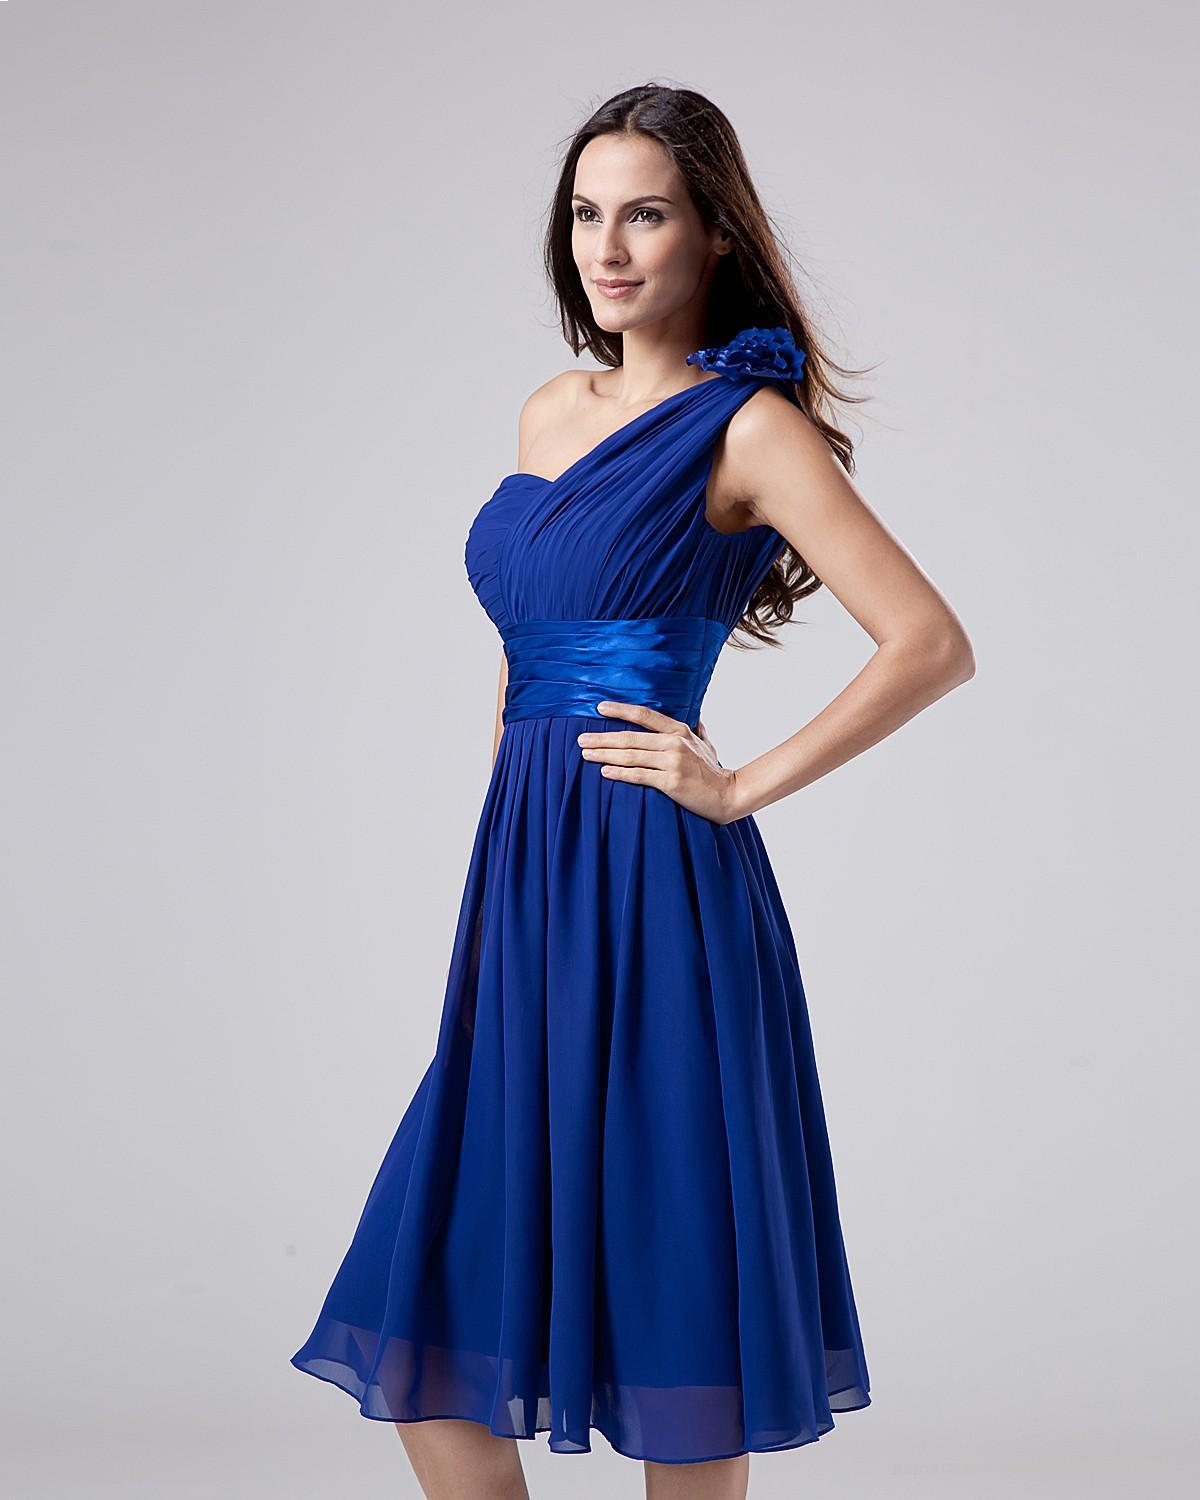 Cheap blue bridesmaid dresses great ideas for fashion dresses 2017 cheap cheap blue a line bridesmaid dresses one shoulder sleeveless ombrellifo Choice Image